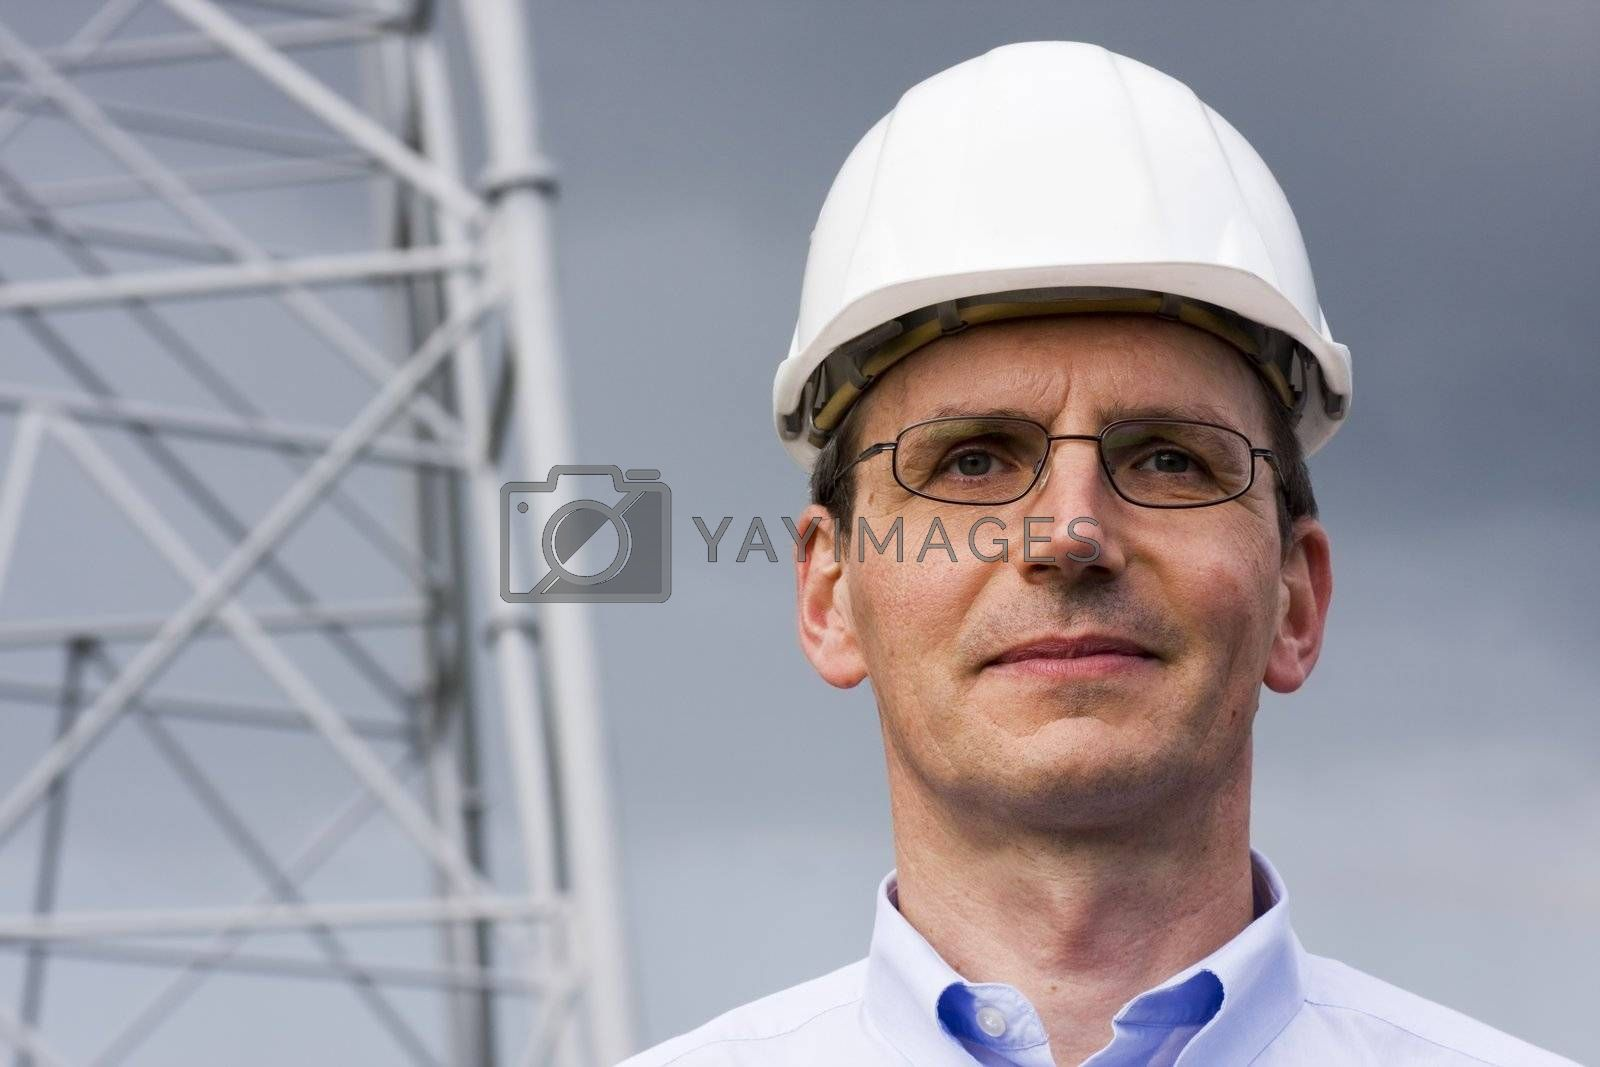 Smiling engineer in front of construction of steel